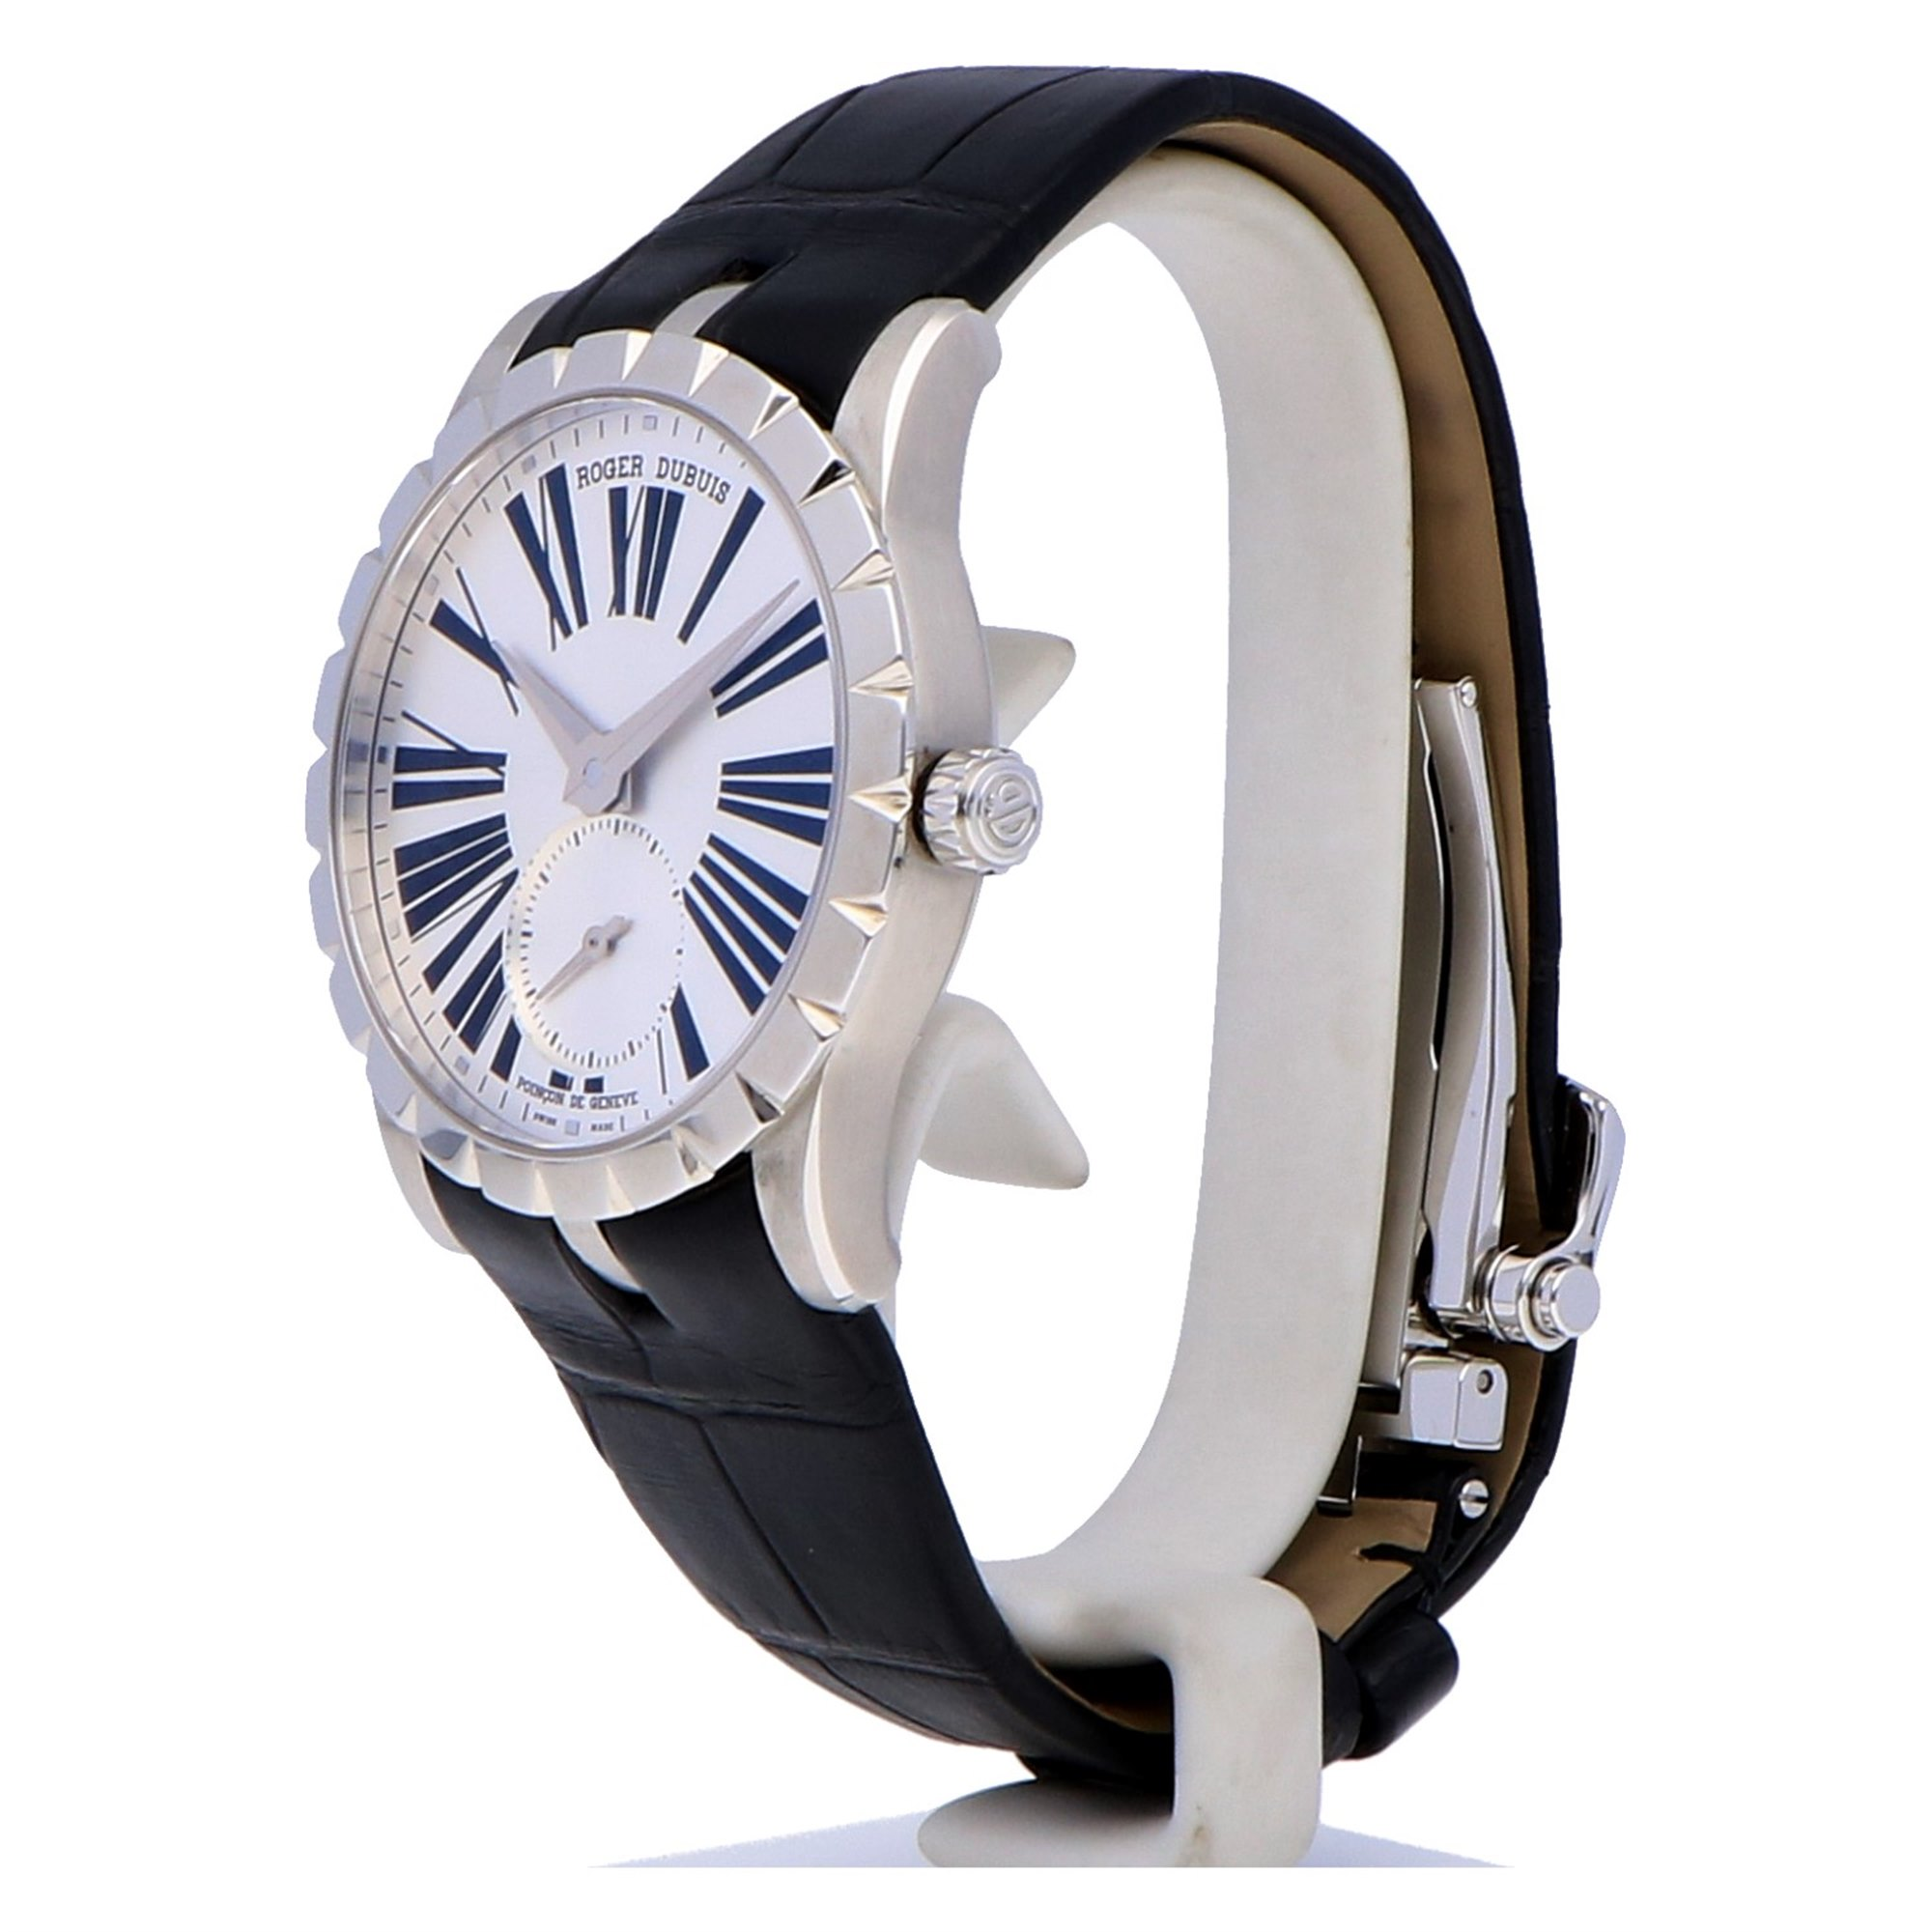 Roger Dubuis Excalibur Stainless Steel RDDBEX0460